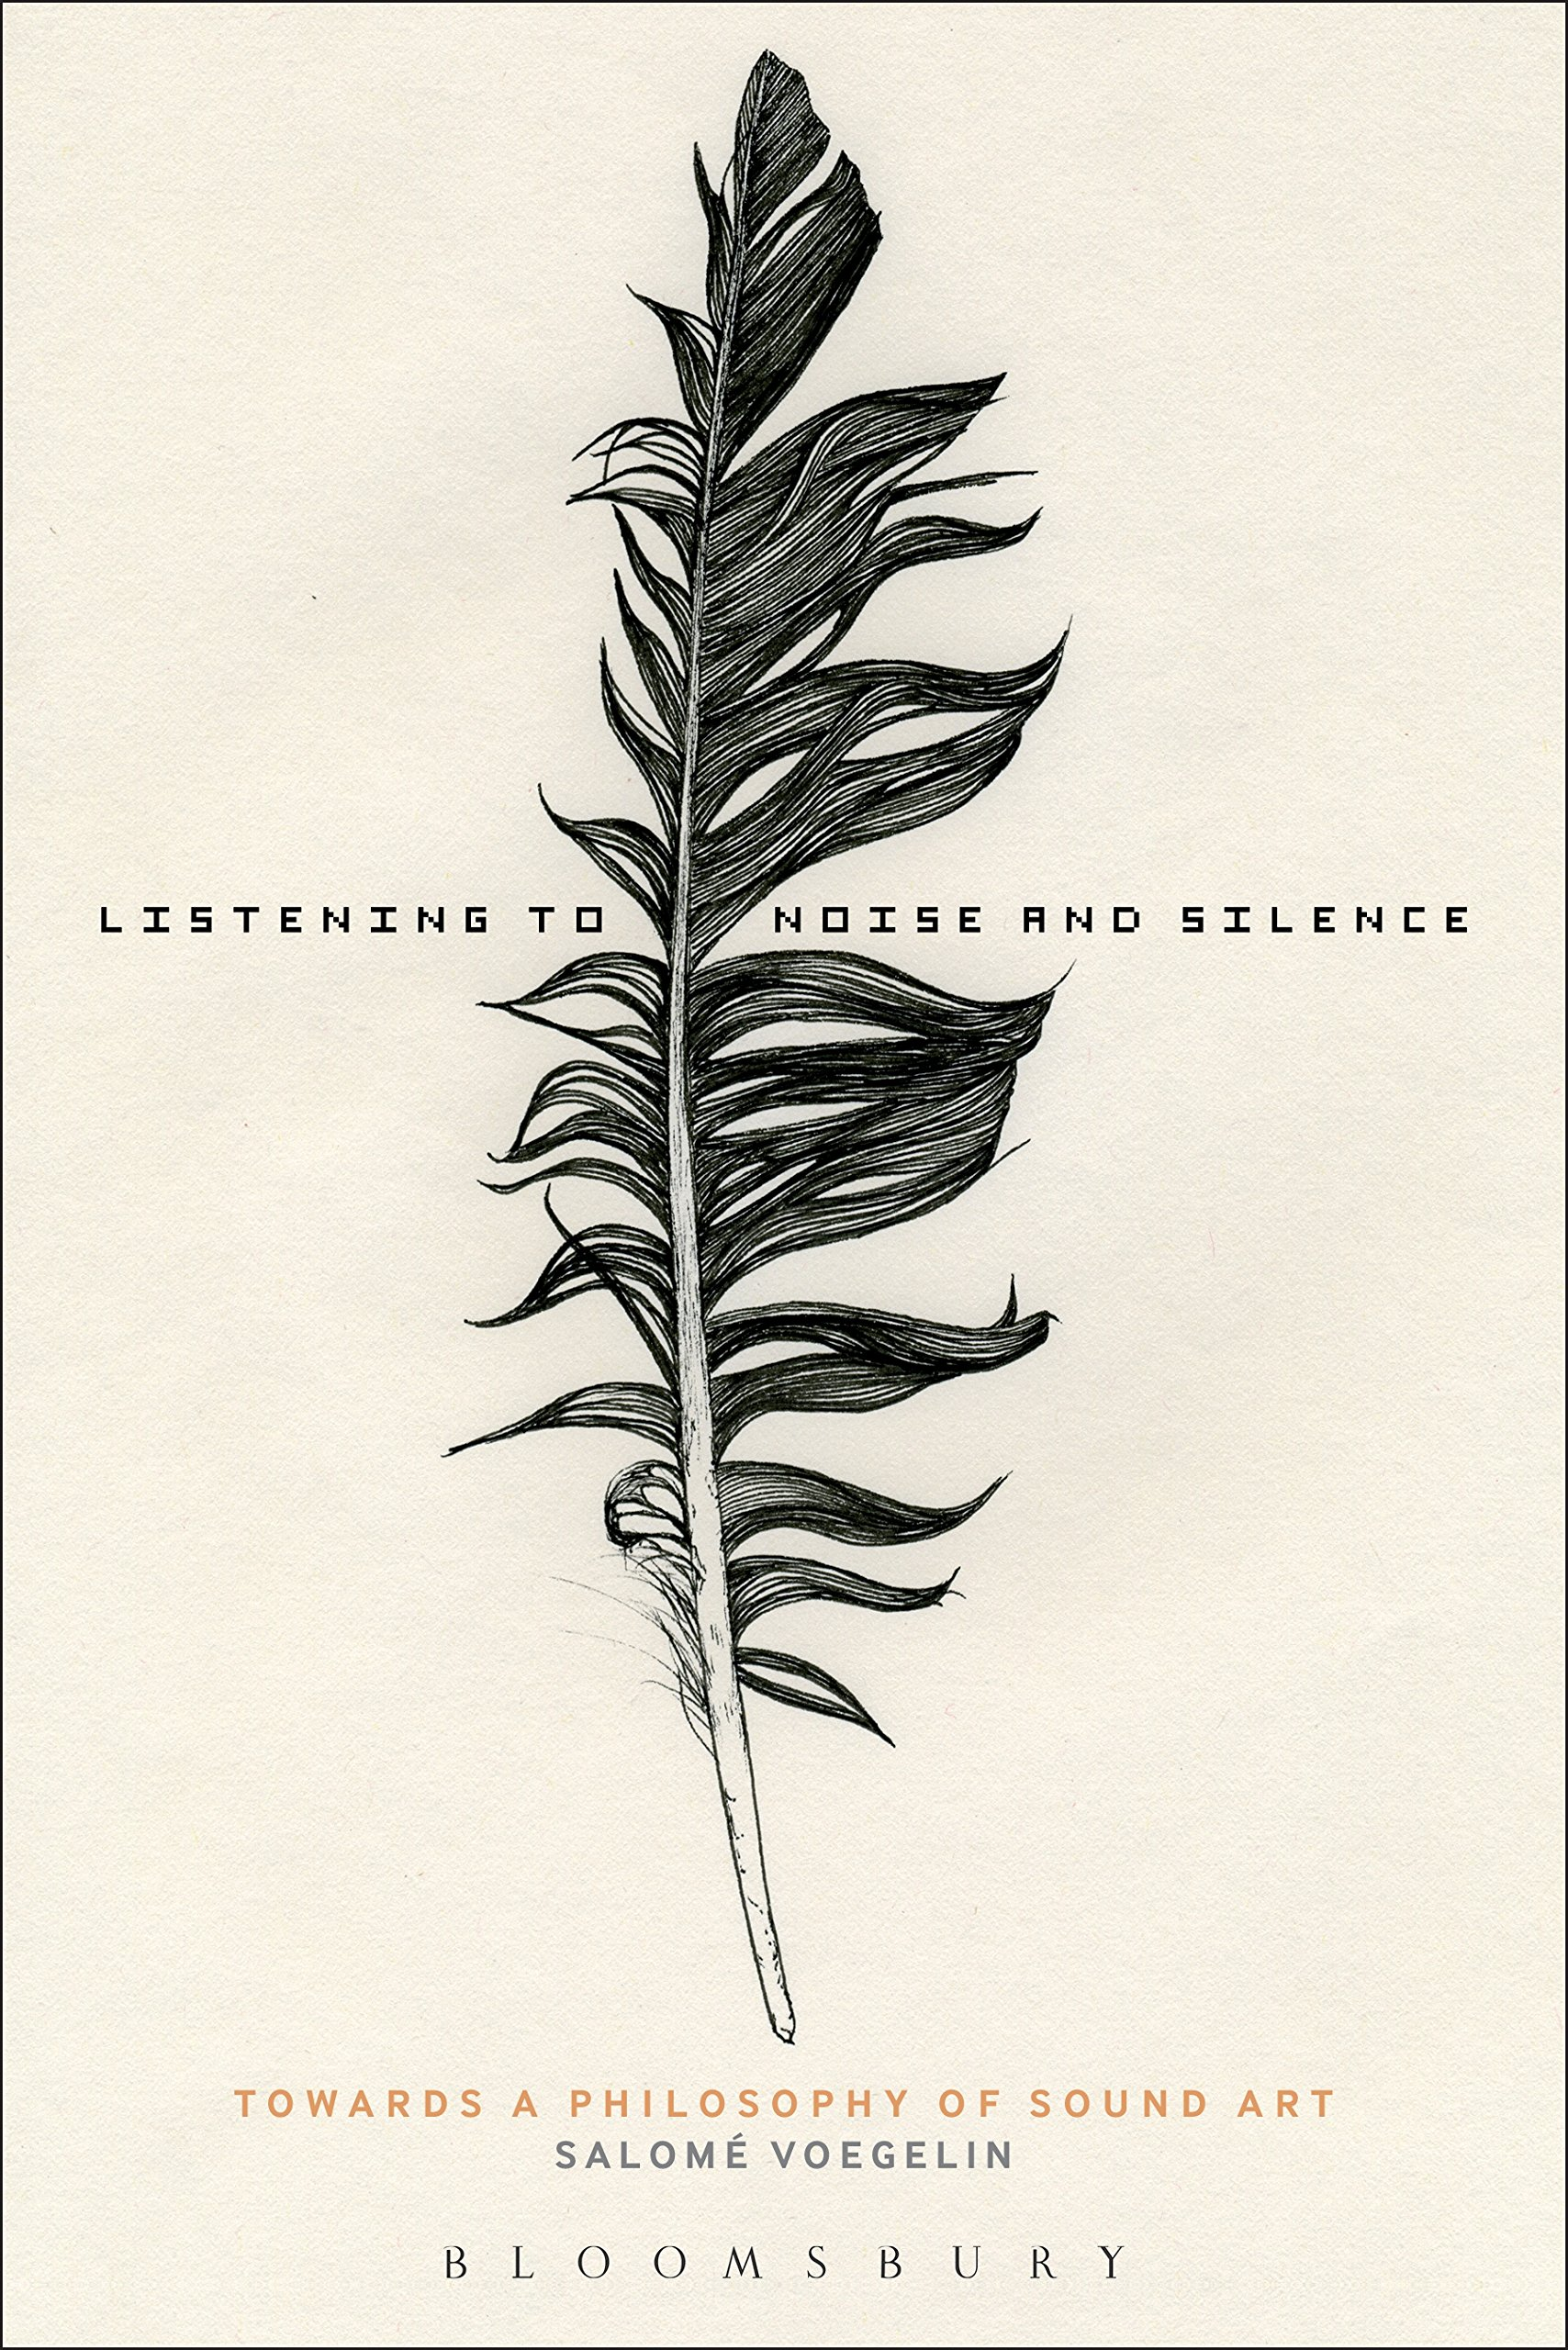 Salomé Voegelin. Listening to Sound and Silence: Towards a Philosophy of Sound Art, A&C Black, 2010